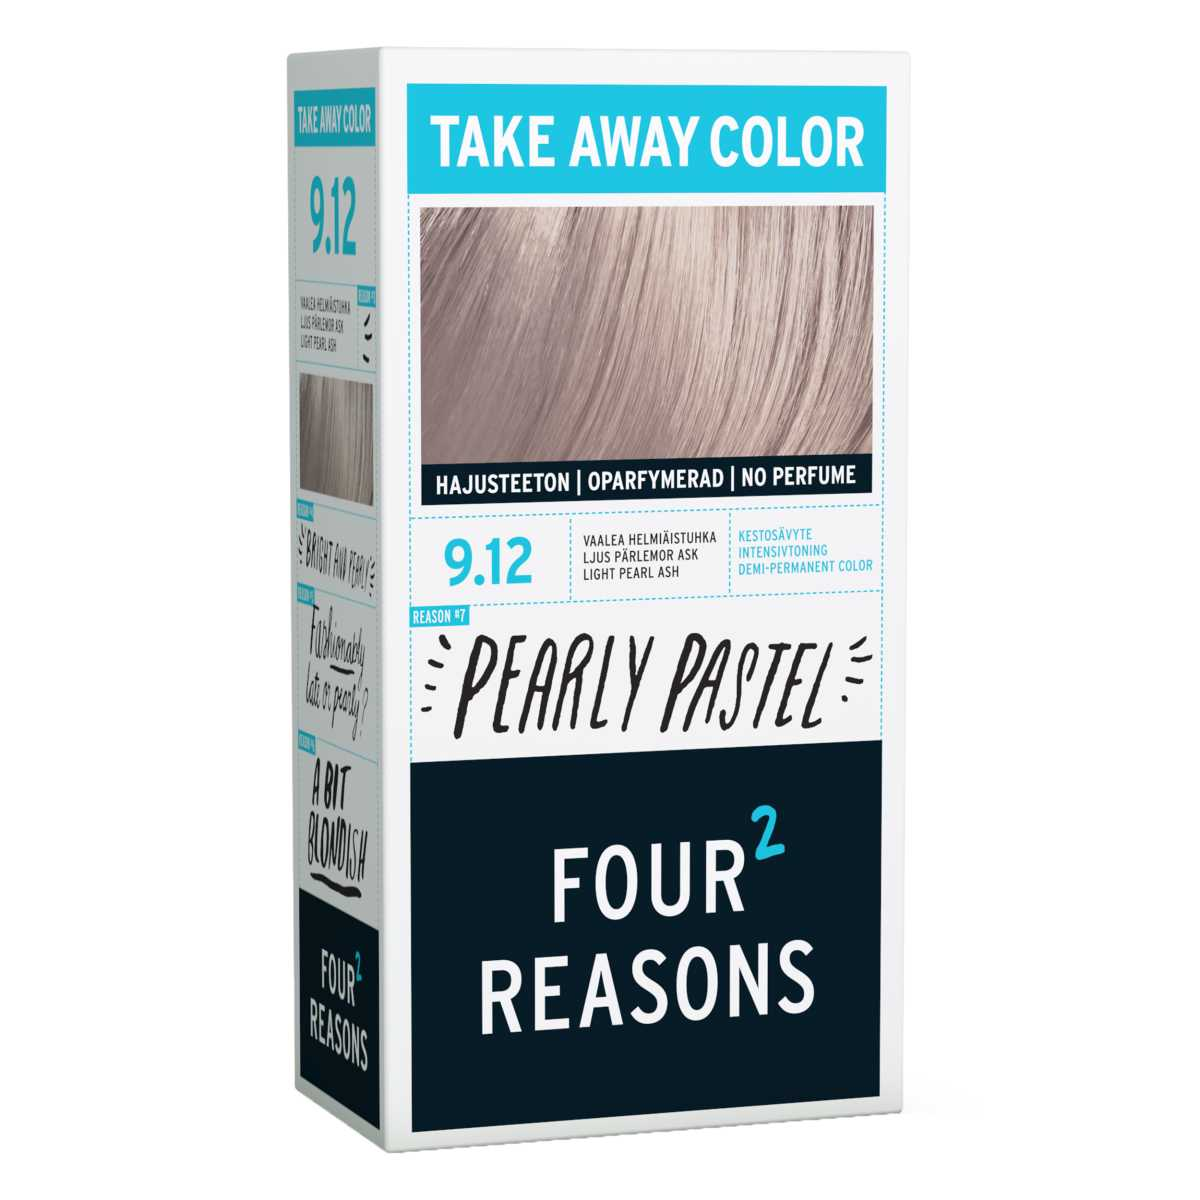 Four-Reasons-Take-Away-Color-Pearly-Pastel-9-12